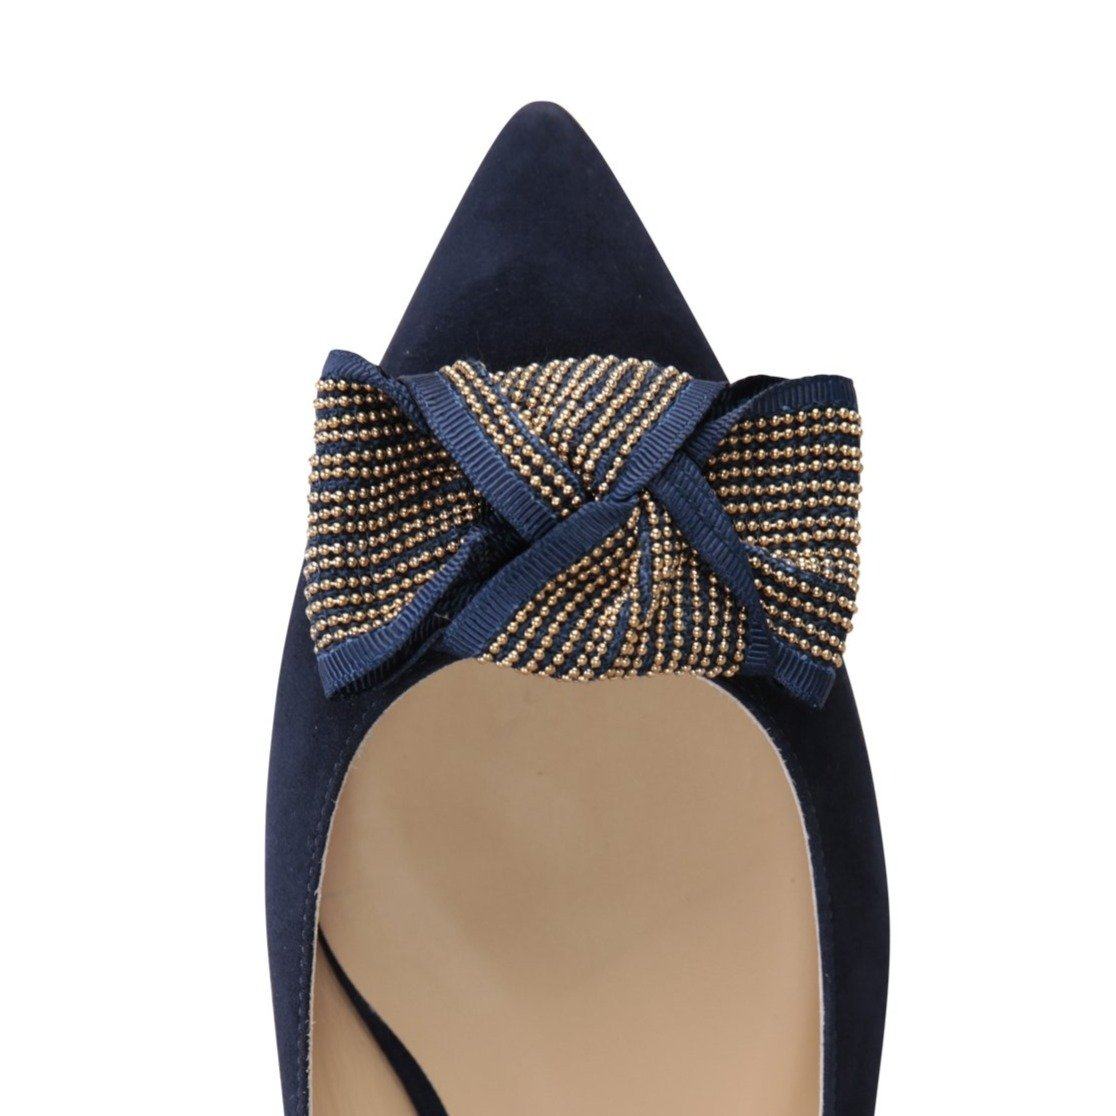 COMO - Velukid Midnight + Gold Stud Bow, VIAJIYU - Women's Hand Made Sustainable Luxury Shoes. Made in Italy. Made to Order.